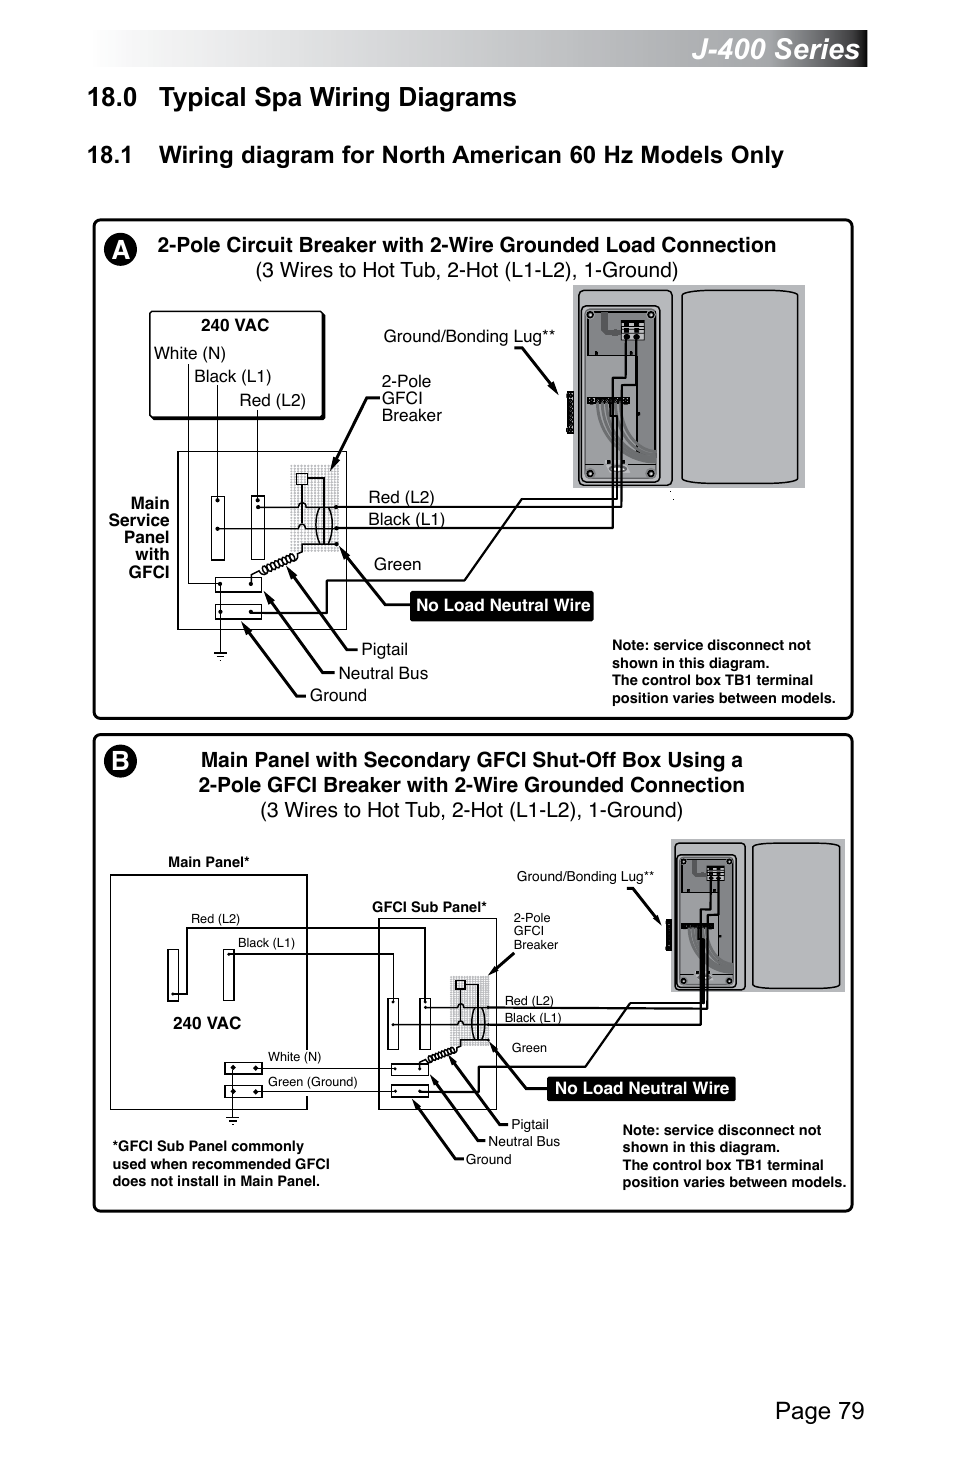 jacuzzi j 470 page85 0 typical spa wiring diagrams, j 400 series, page 79 jacuzzi j jacuzzi wiring diagram at edmiracle.co